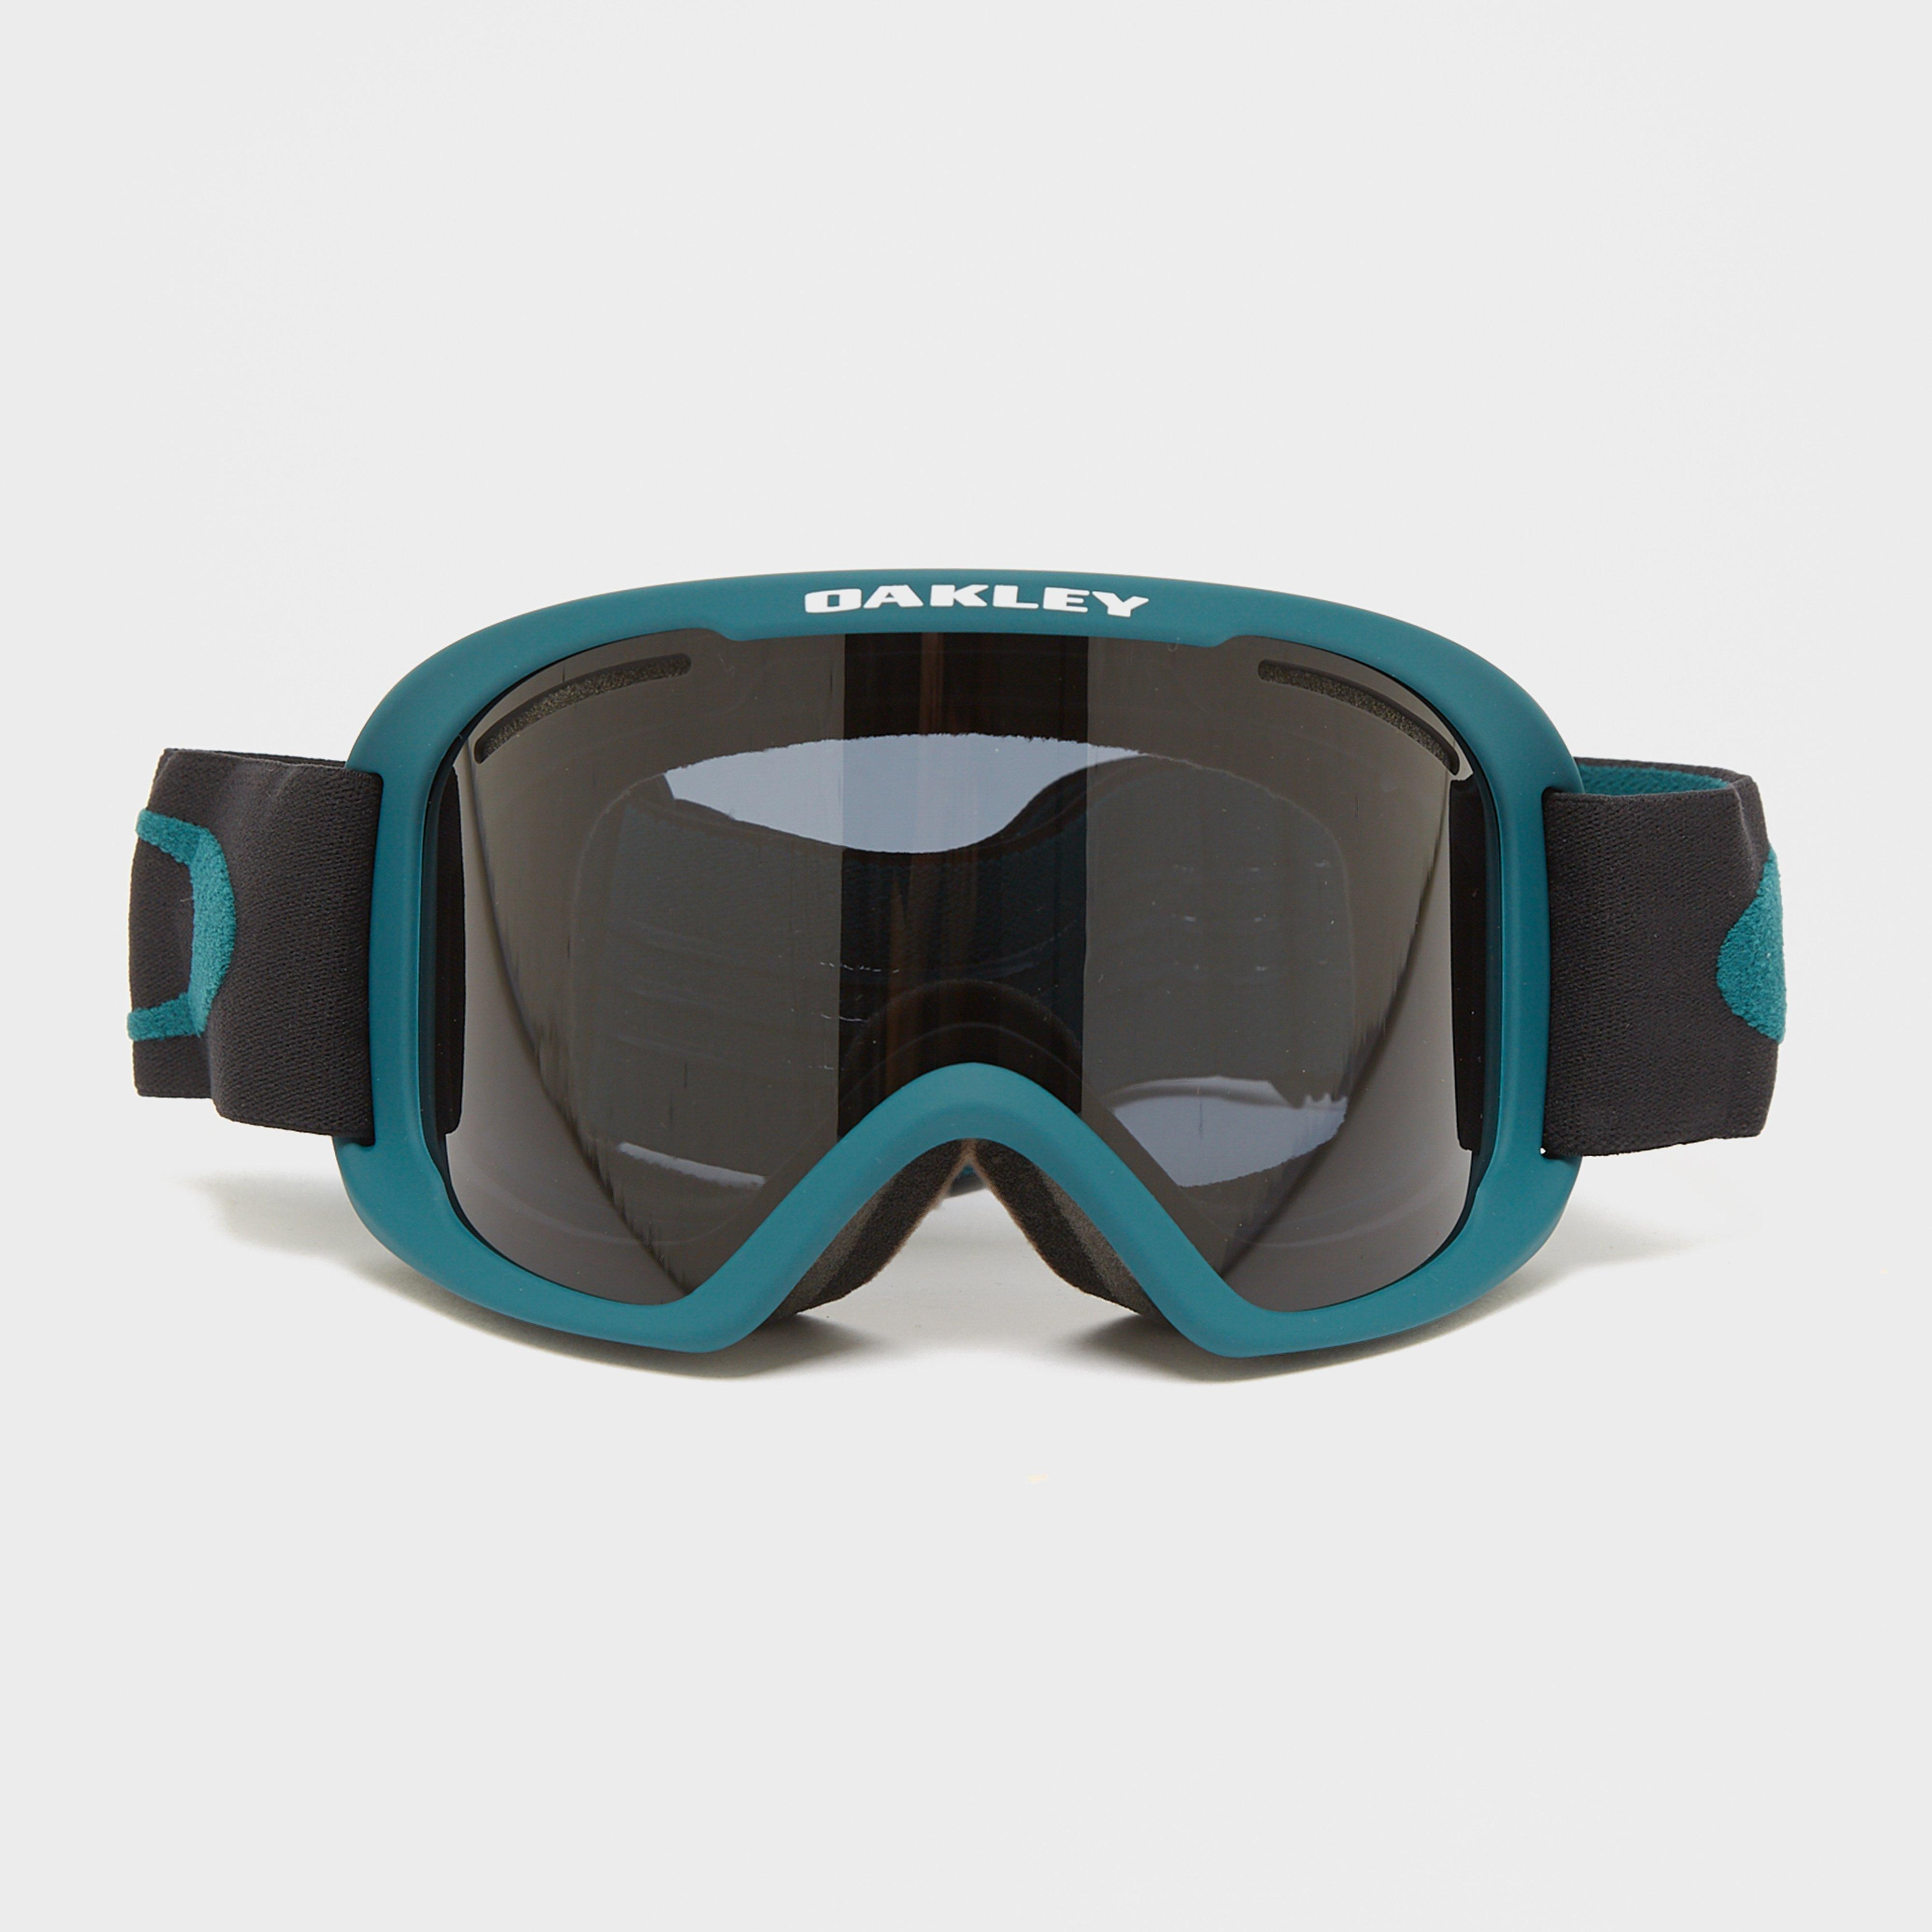 Oakley O Frame 2.0 PRO XL Snow Goggles, Dark grey/DGY